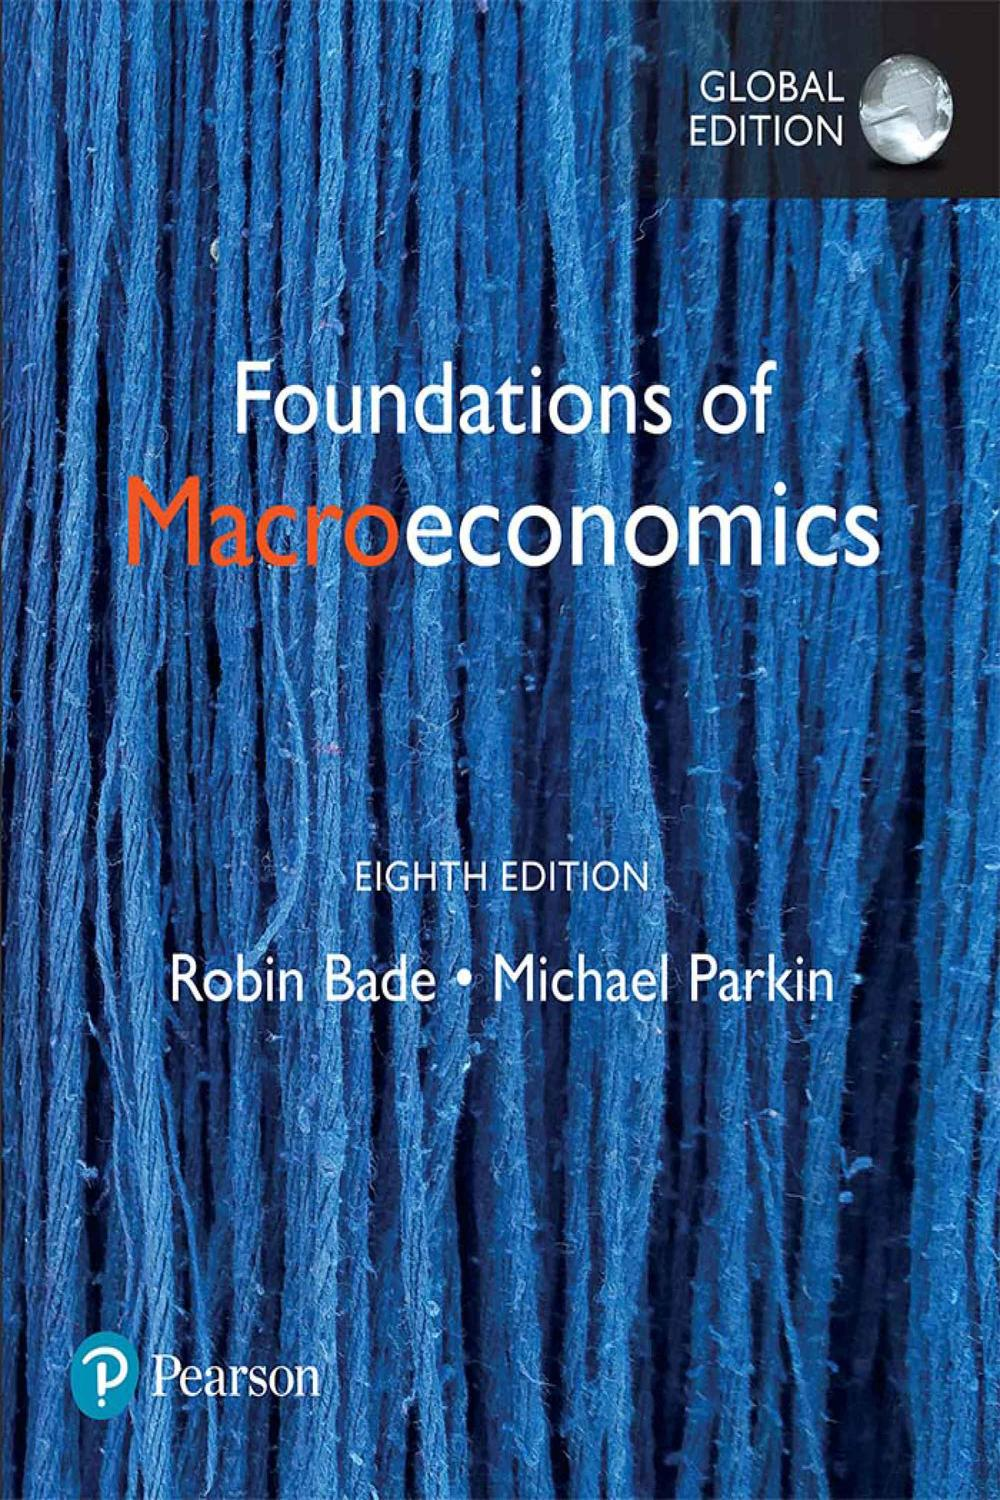 Foundations of Macroeconomics, Global Edition by Robin Bade, Michael